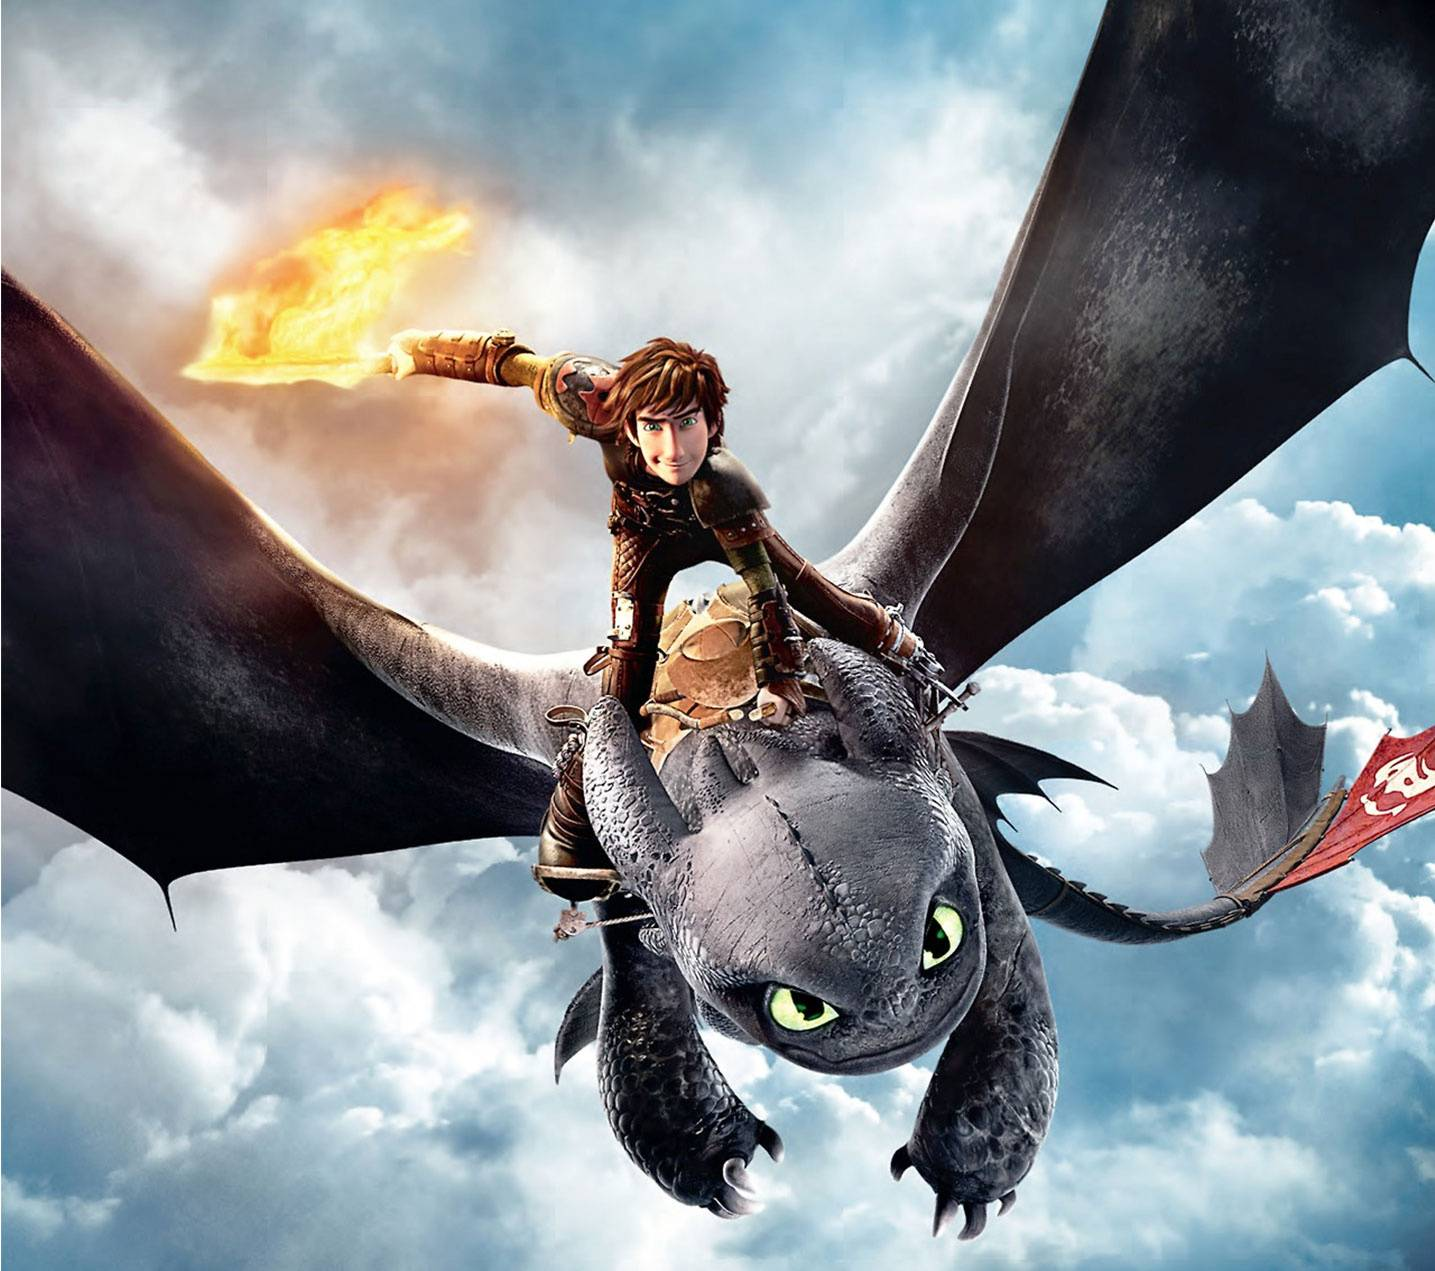 Toothless Wallpaper: Hiccup And Toothless Wallpaper By TheGrzebol